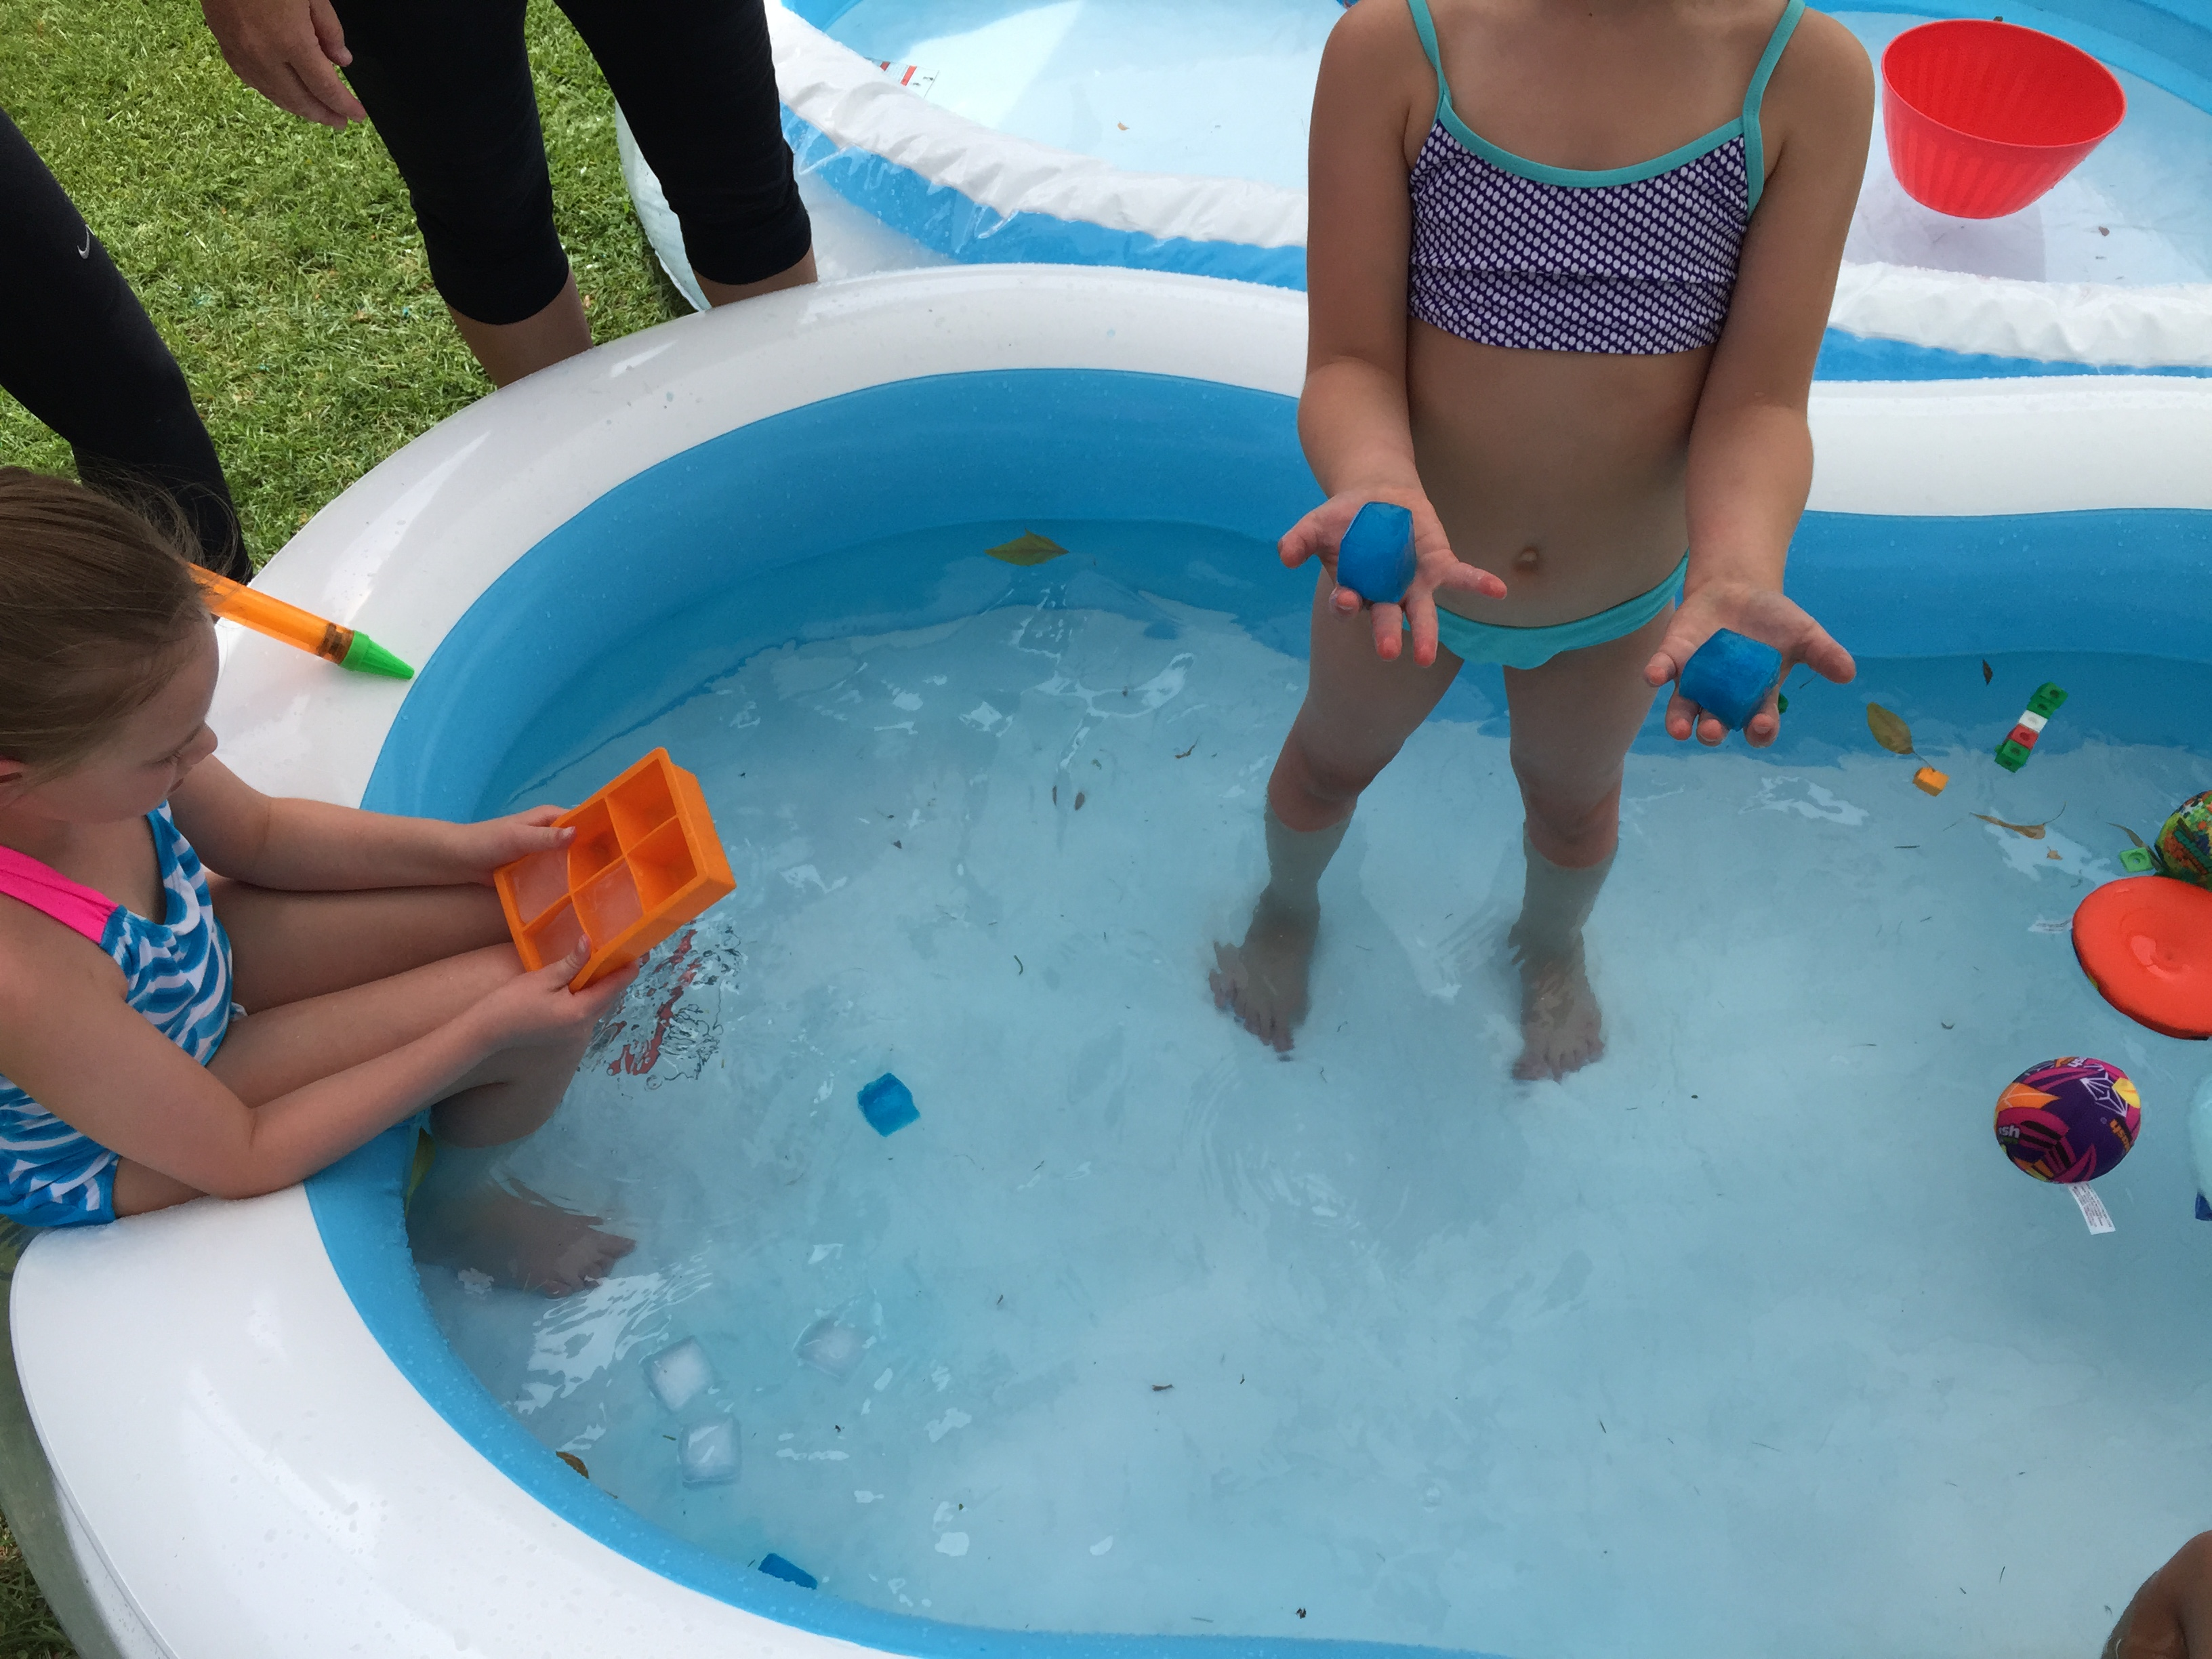 Kids playing with toys floating in kiddie pool